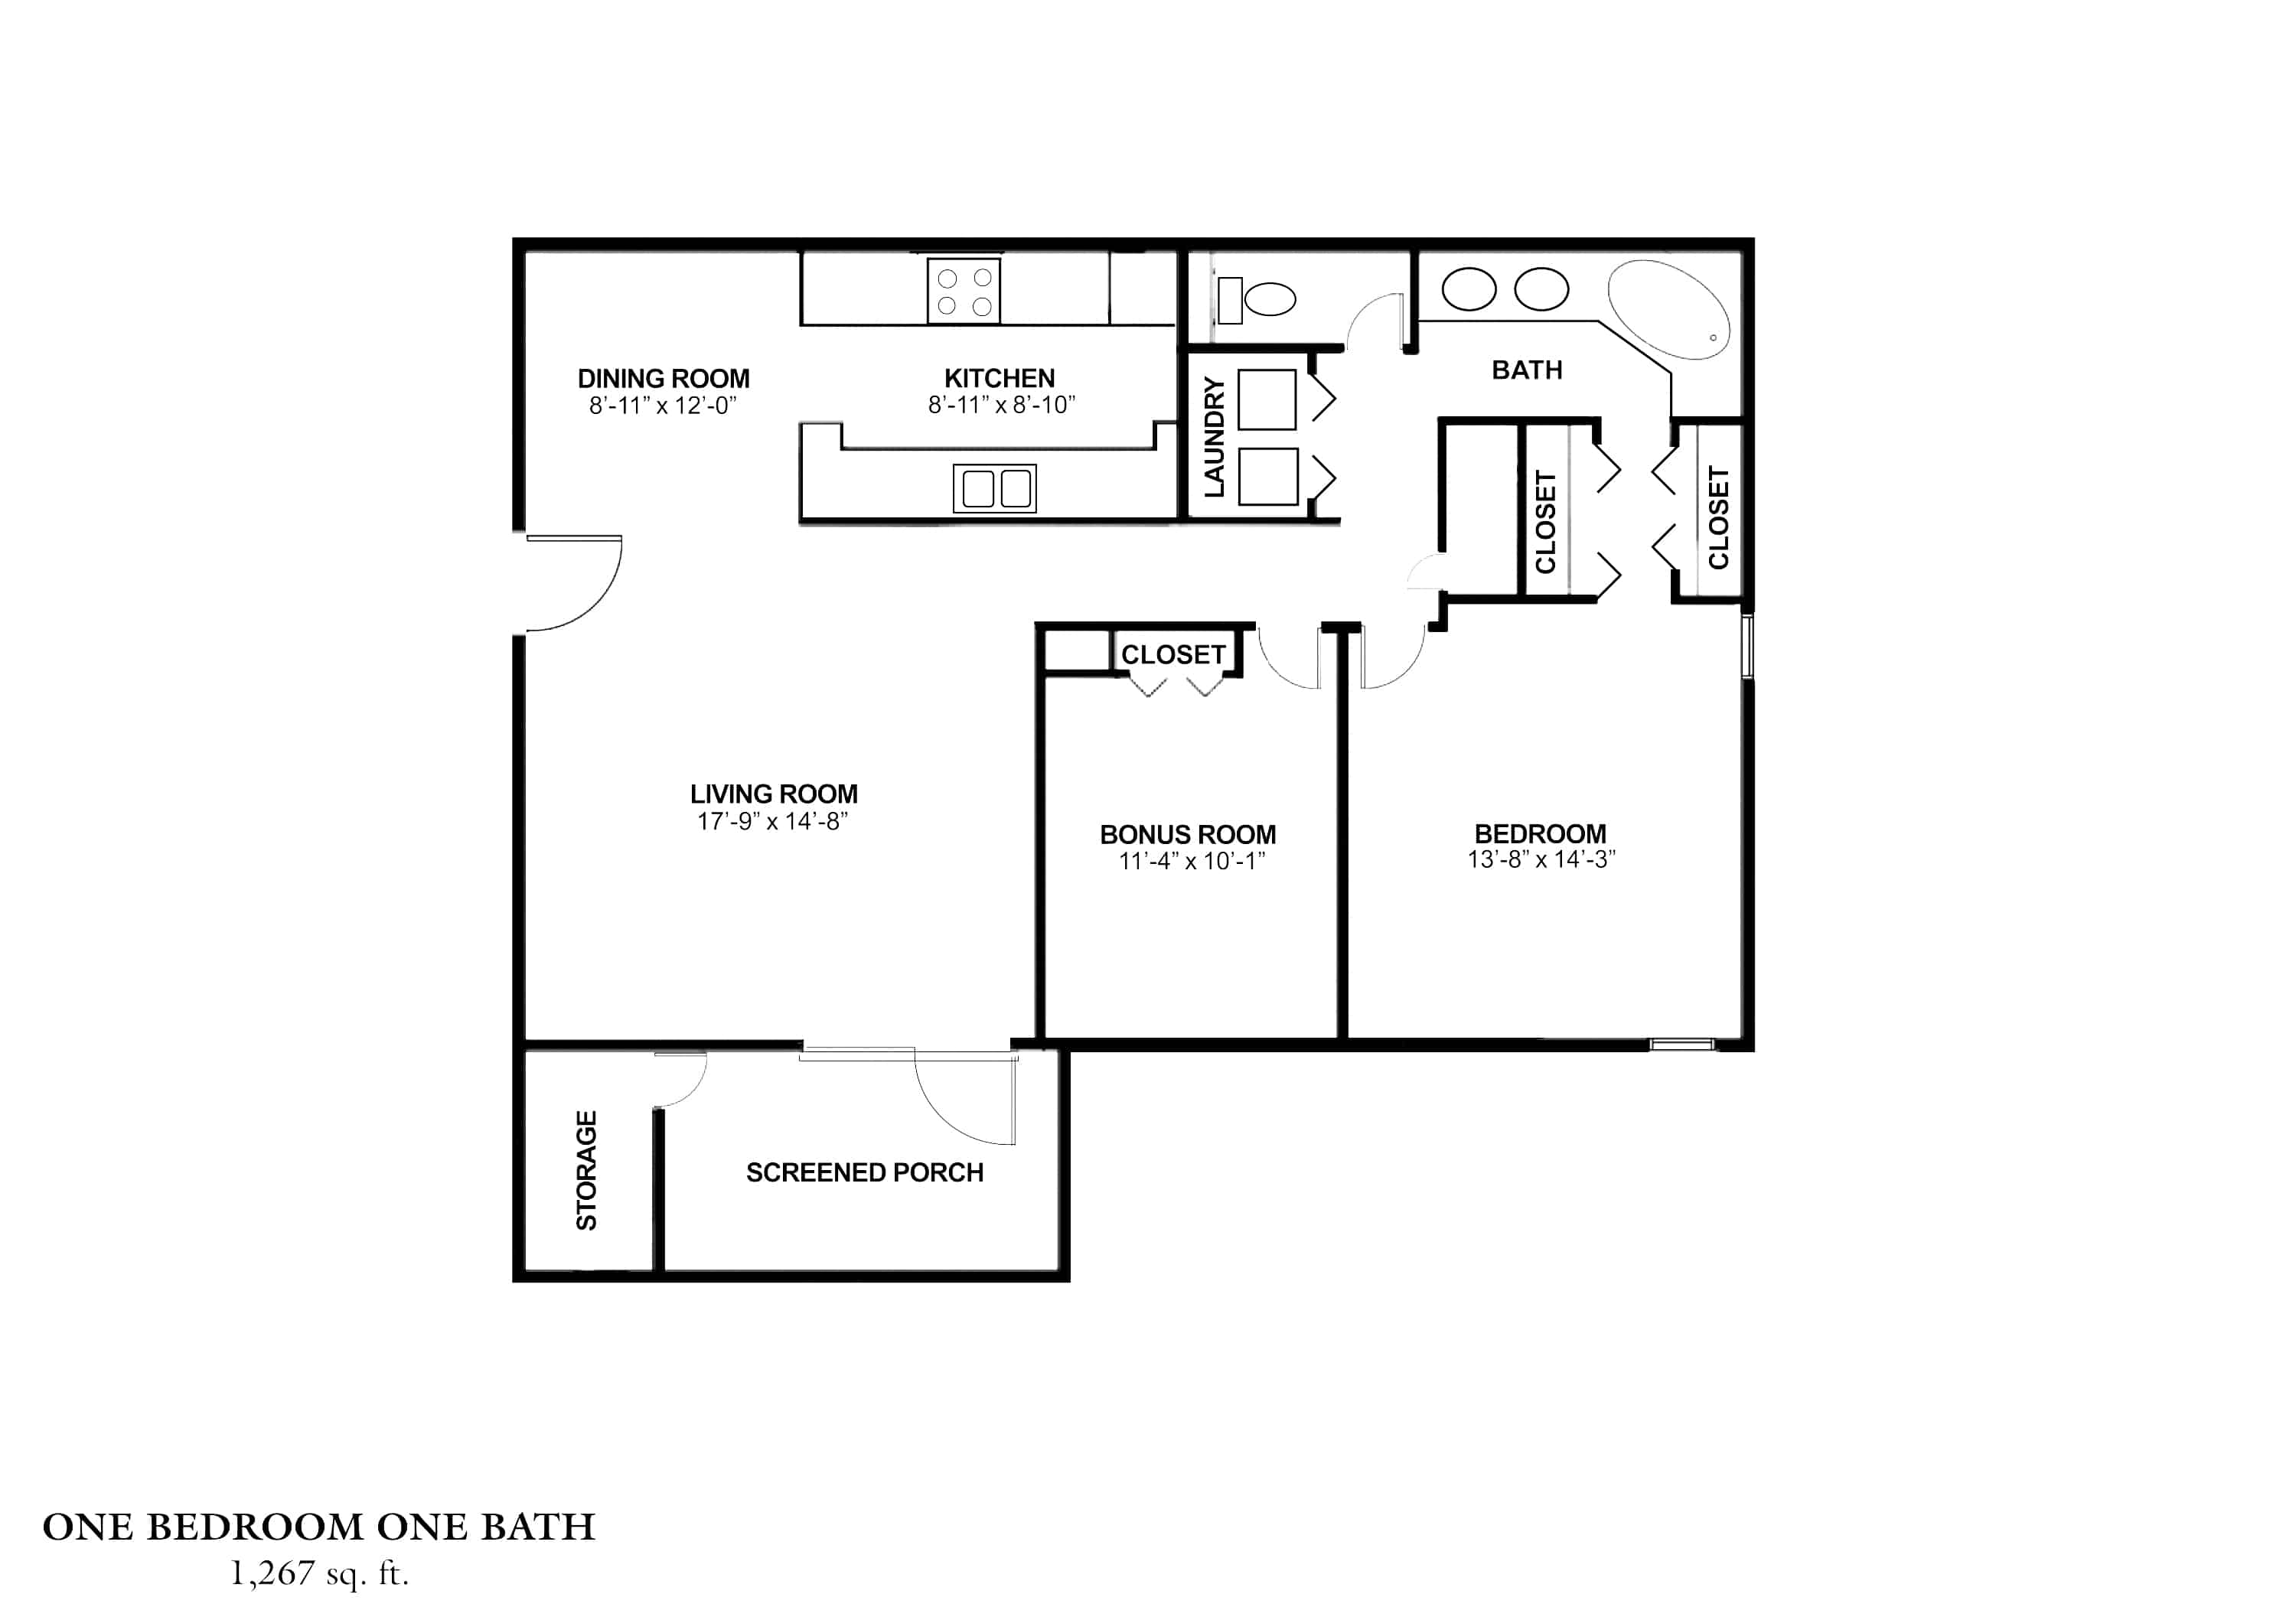 One Bedroom, One Bath with Bonus Room Approx. 1,267 sq. ft. Beds 1 Baths 1 in Greystone's Columbus GA Apartments